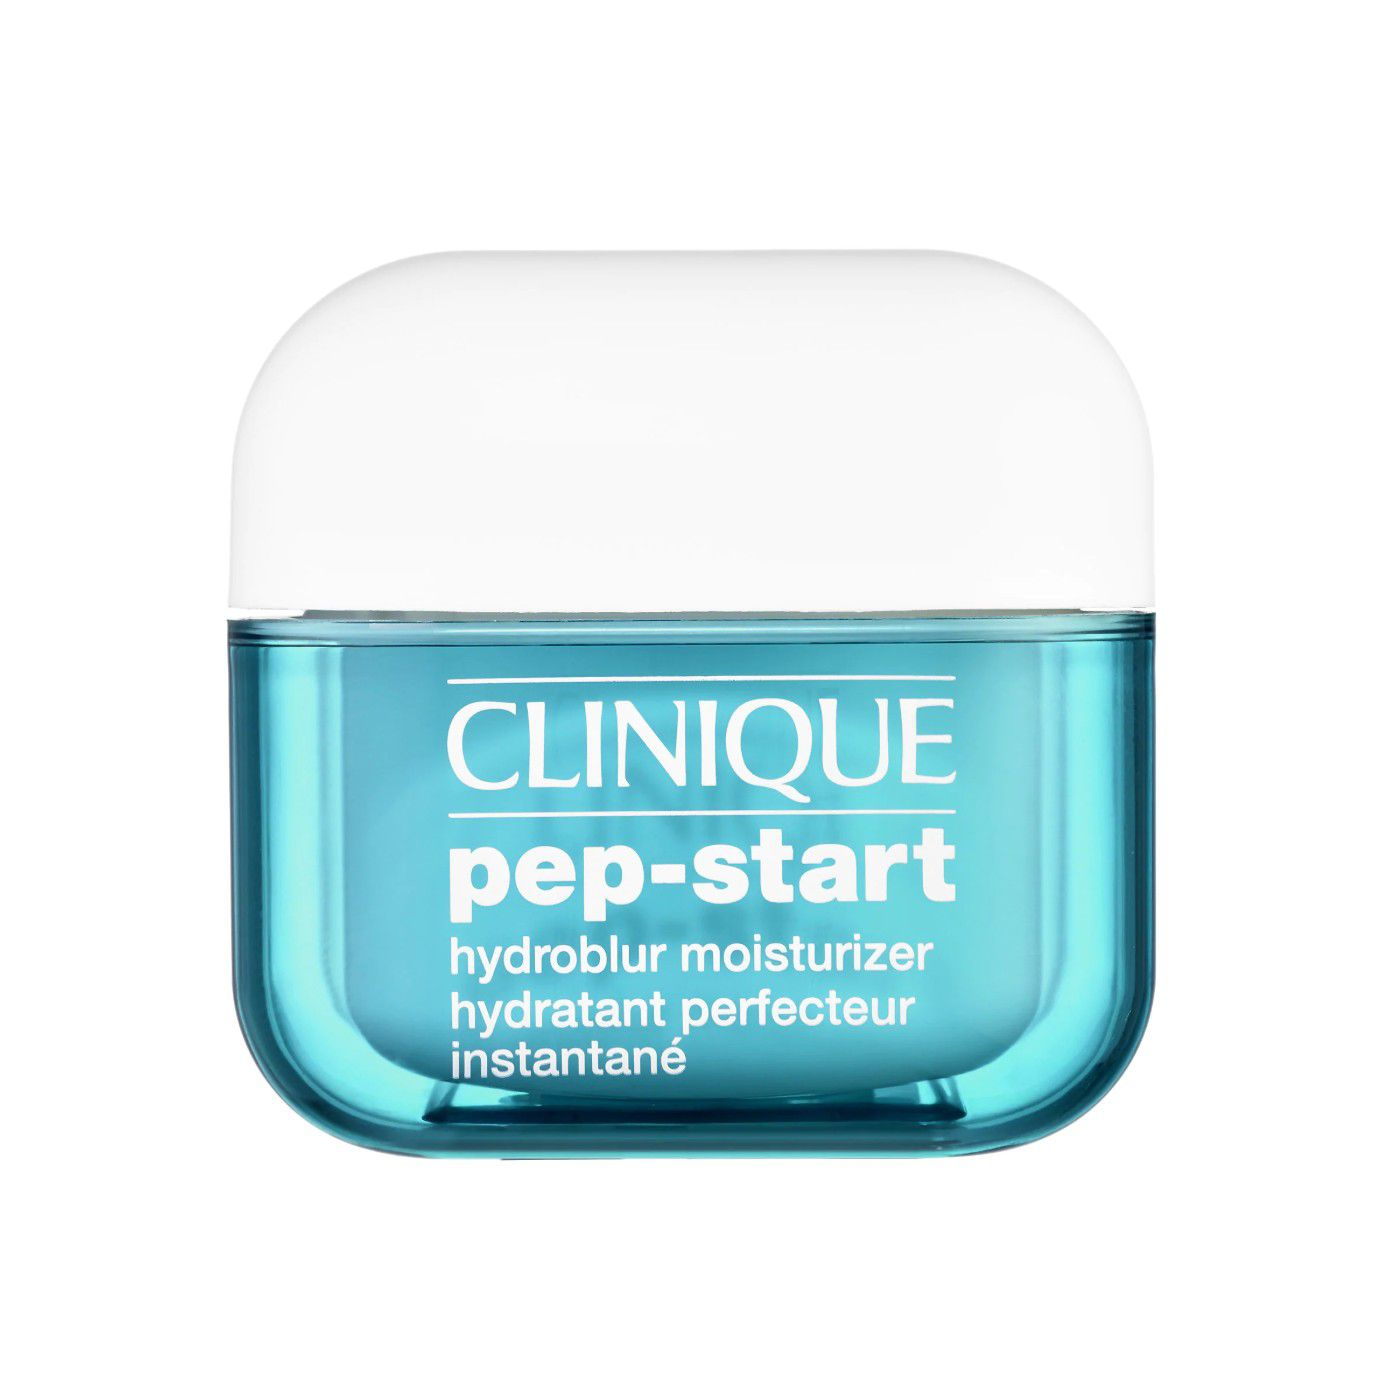 Blue jar of Clinique Pep-Start Moisturizer on a white background.